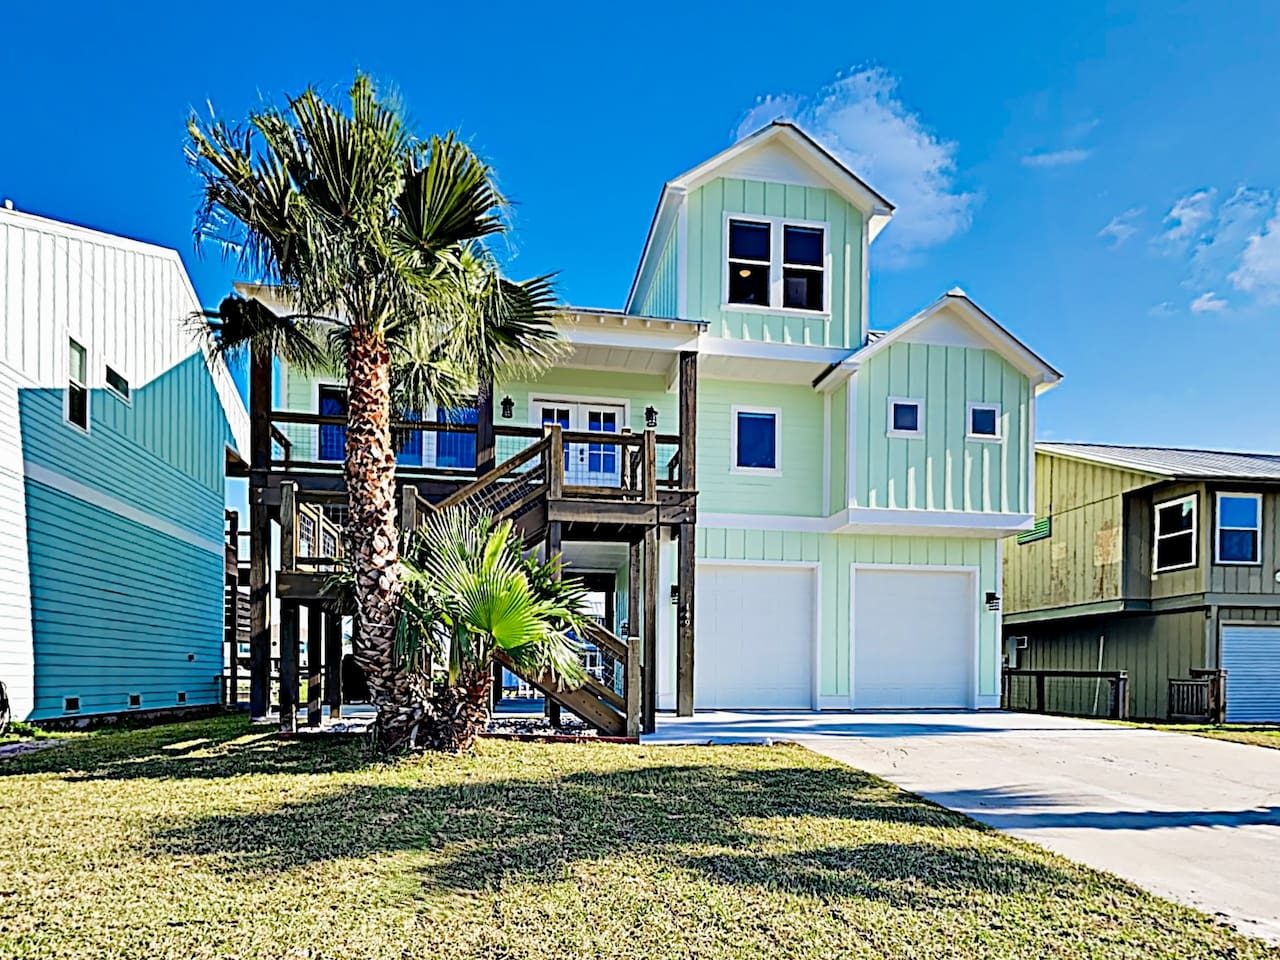 Welcome to City By The Sea! This home is professionally managed by TurnKey Vacation Rentals.